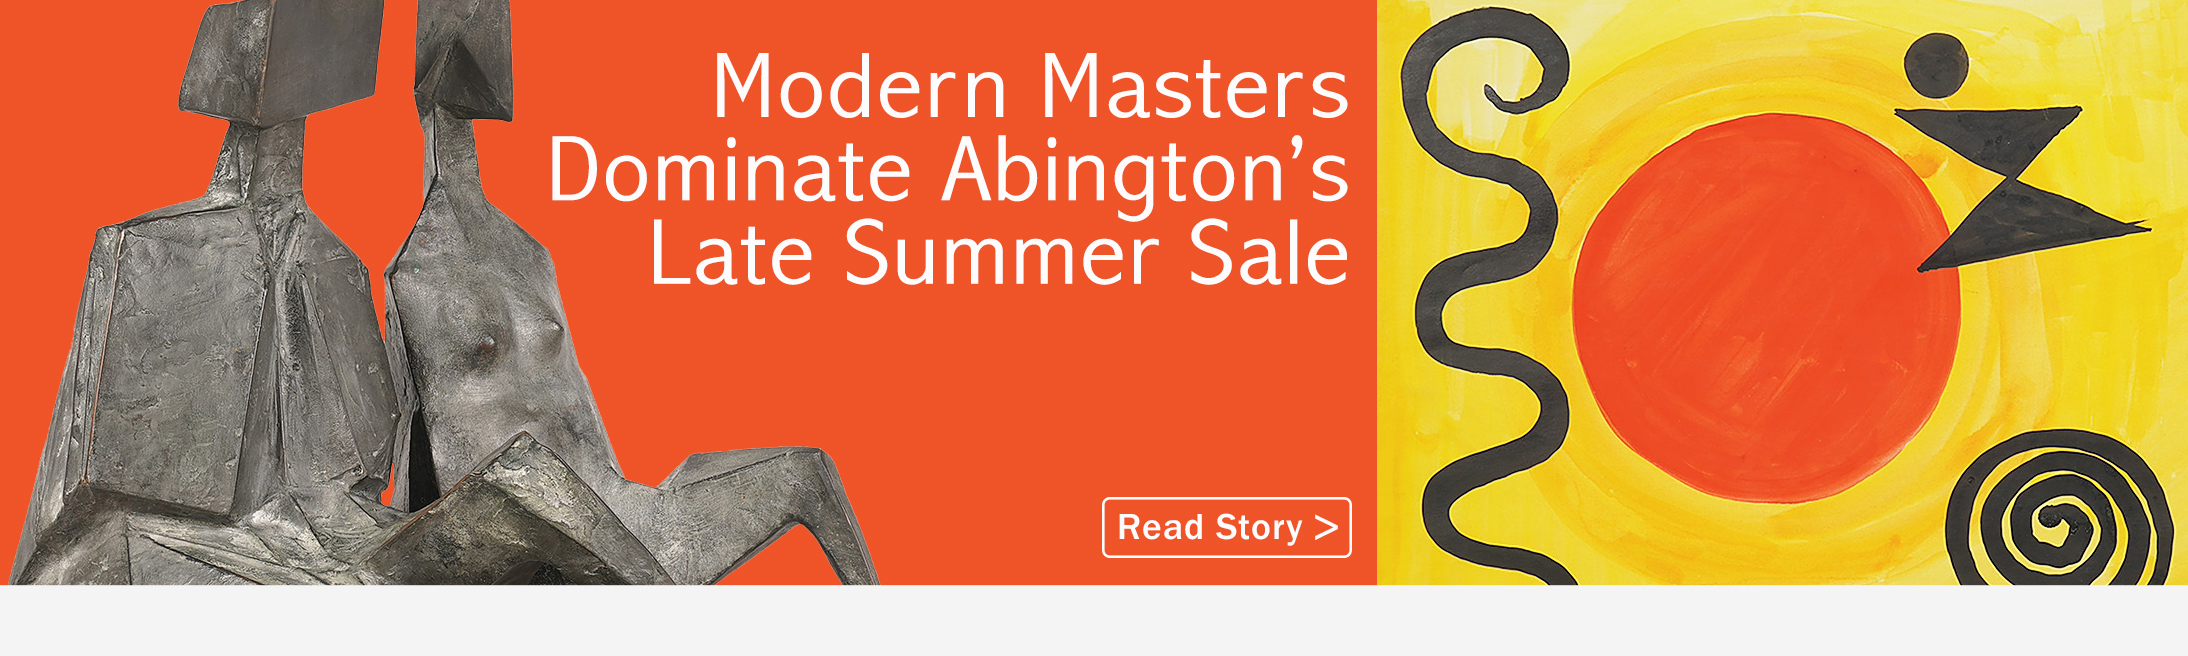 Modern Masters Dominate Abington's Late Summer Sale